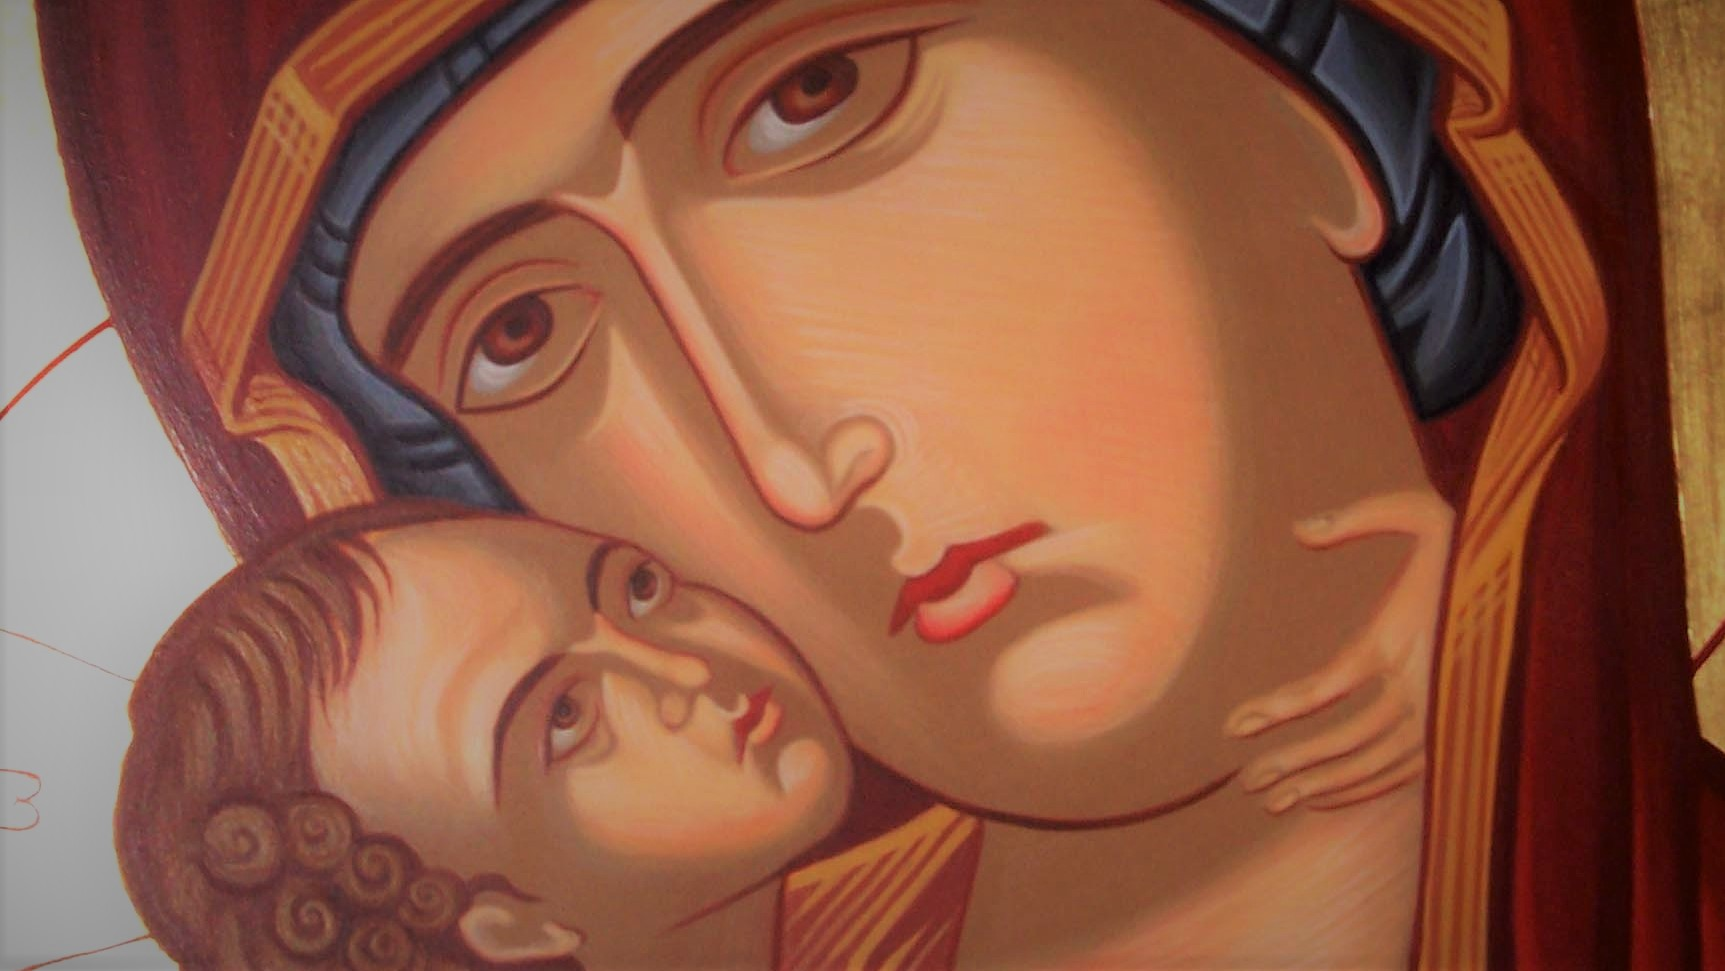 What the Feast of the Mother Teaches About the Son